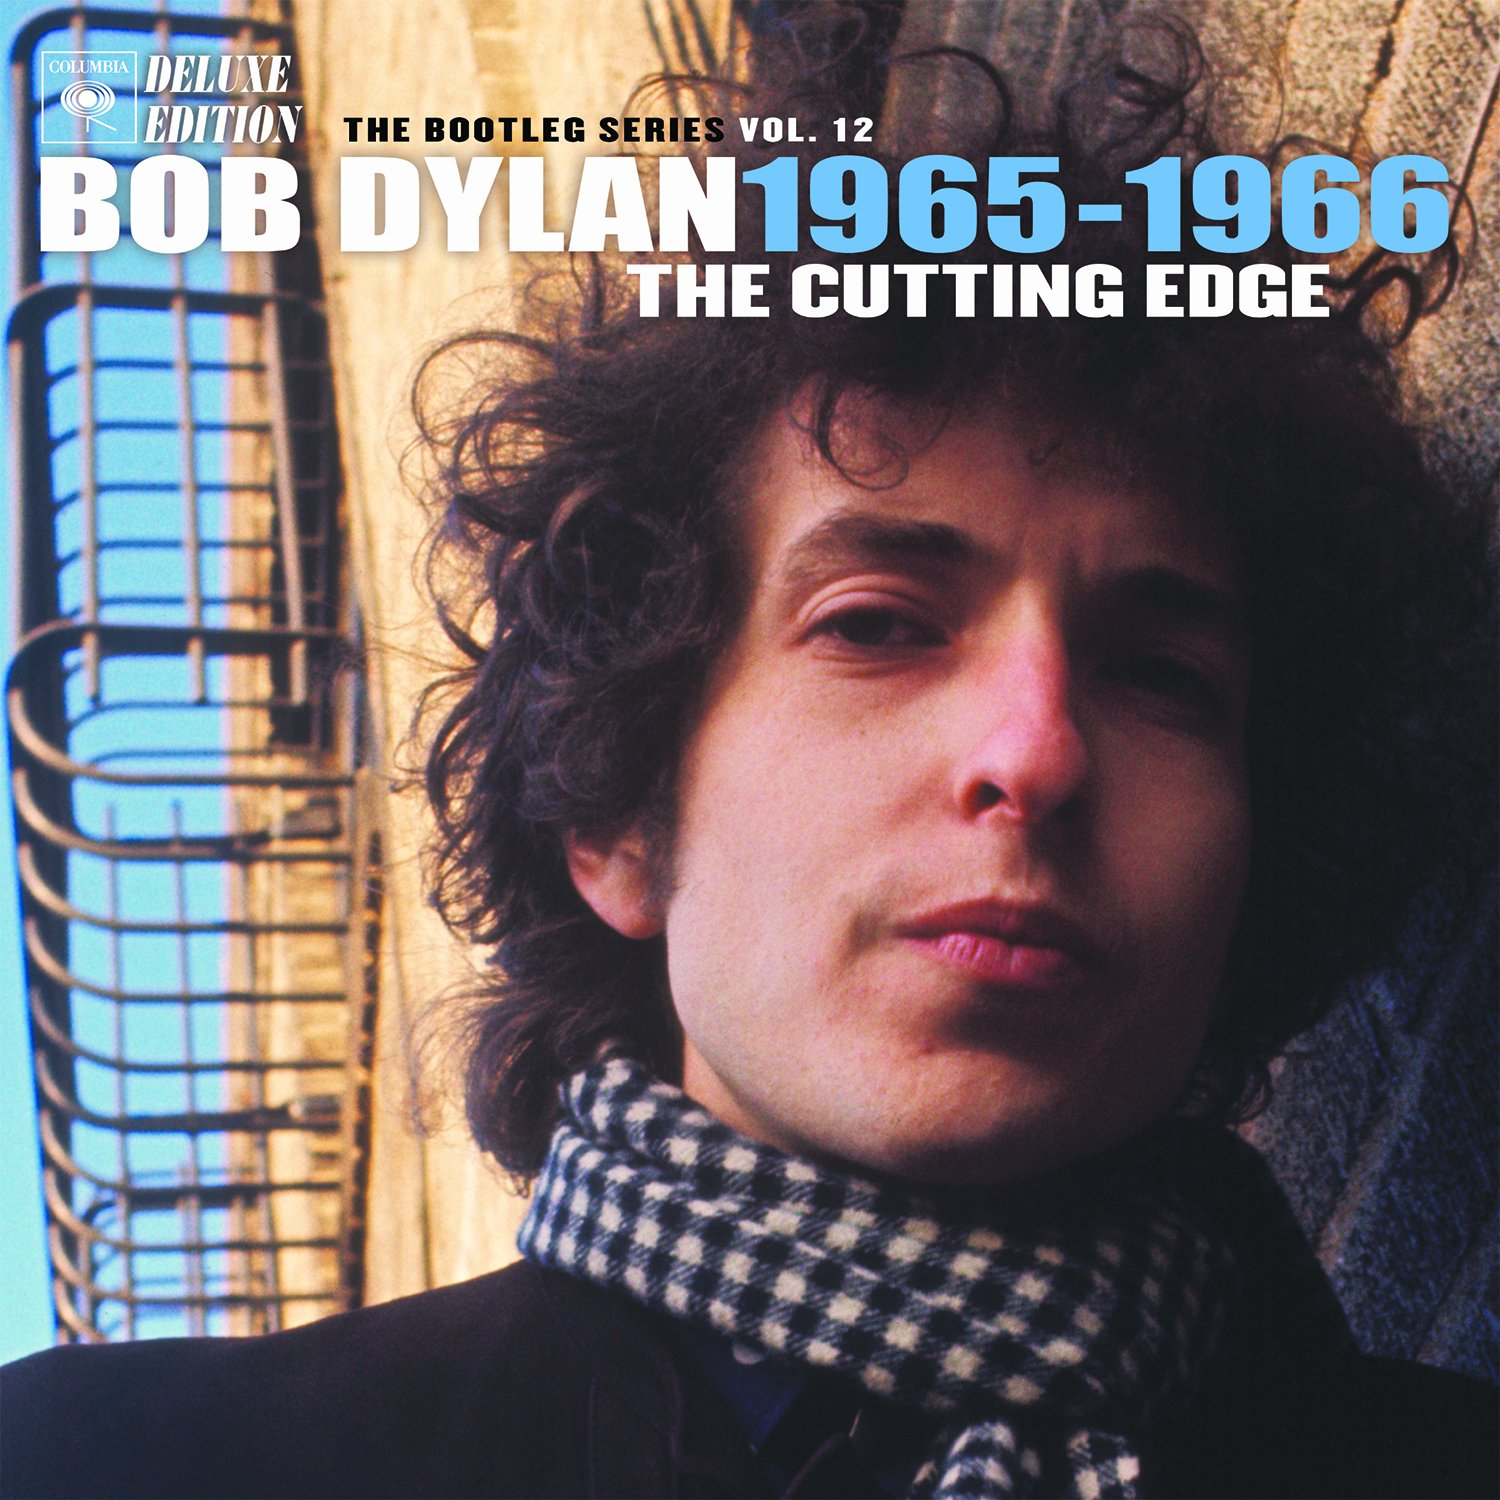 The Cutting Edge 1965-1966: The Bootleg Series, Vol.12 (Deluxe Edition) by Sony Legacy